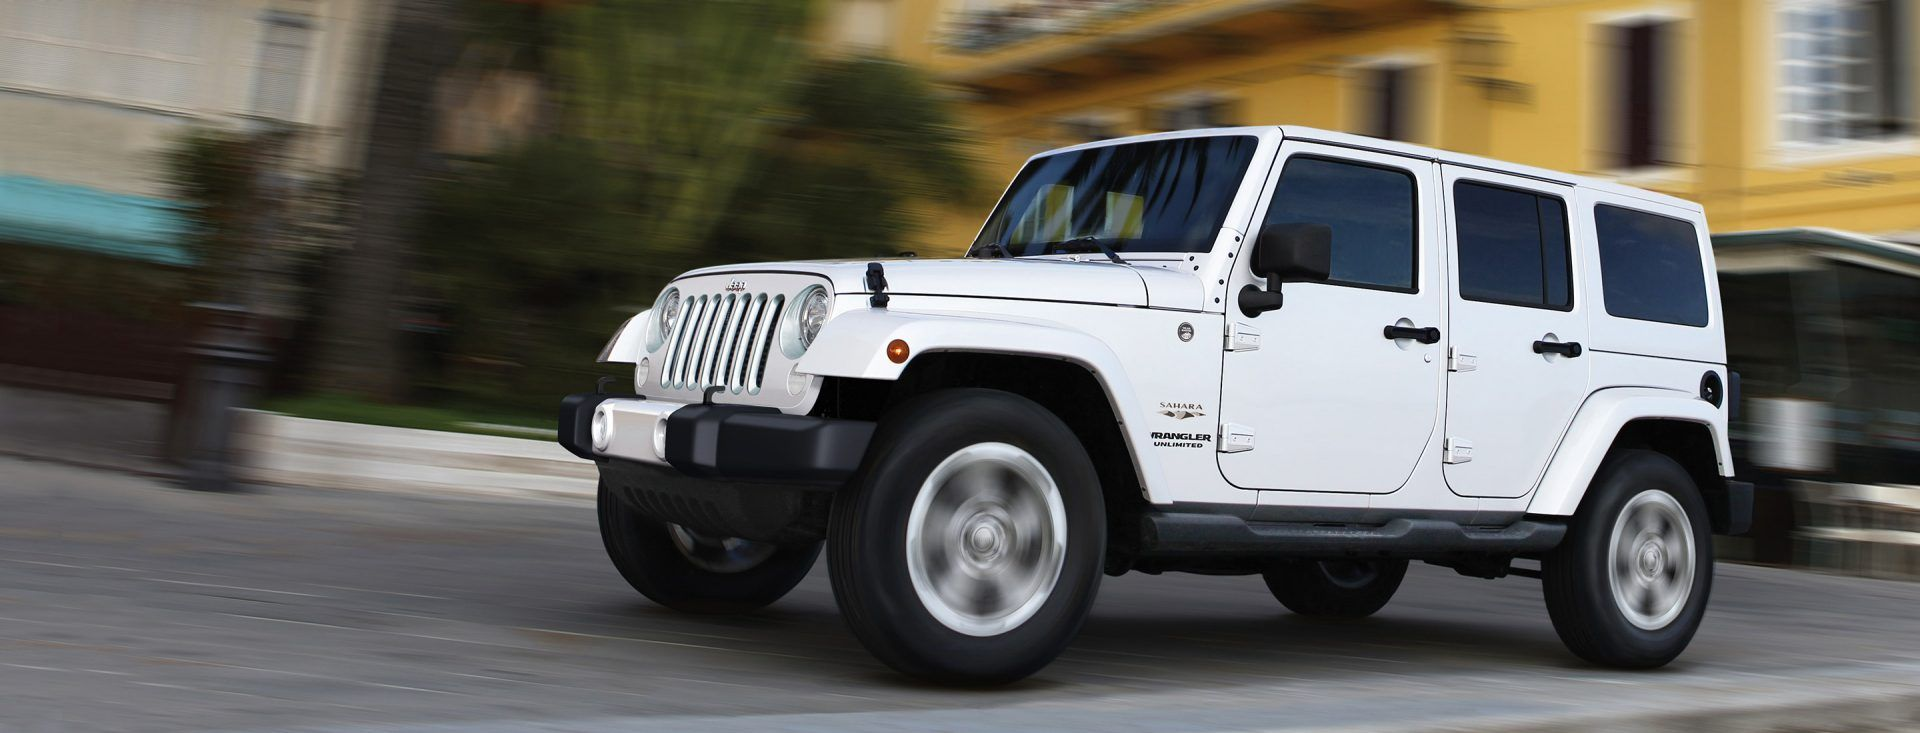 Explore jeep unlimited jeep wranglers and more